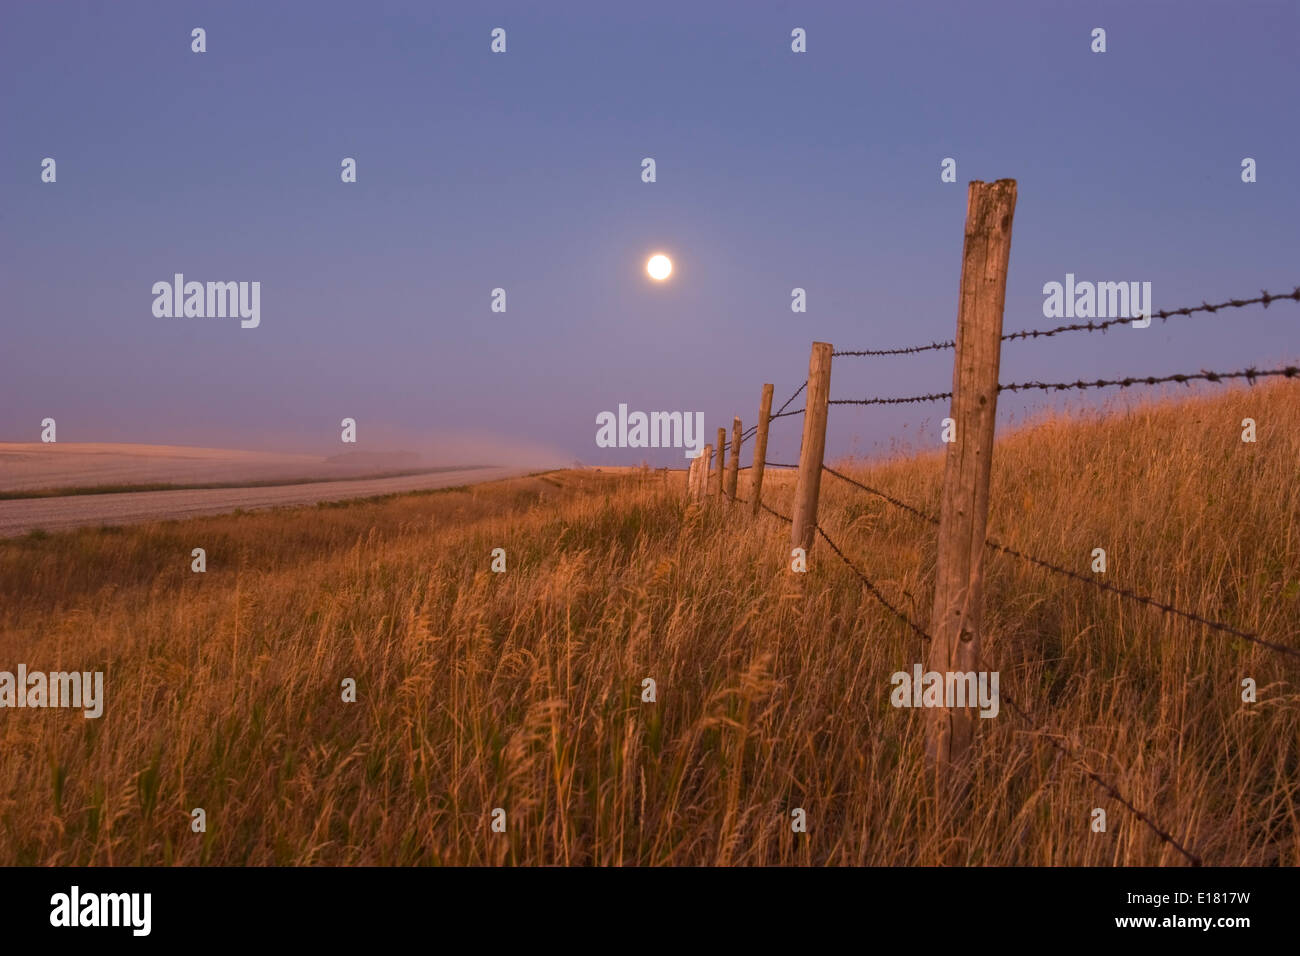 Harvest Moon down the road. Canon 20Da with 18-200 mm lens at 42mm at f/11 for 2.5 seconds. - Stock Image